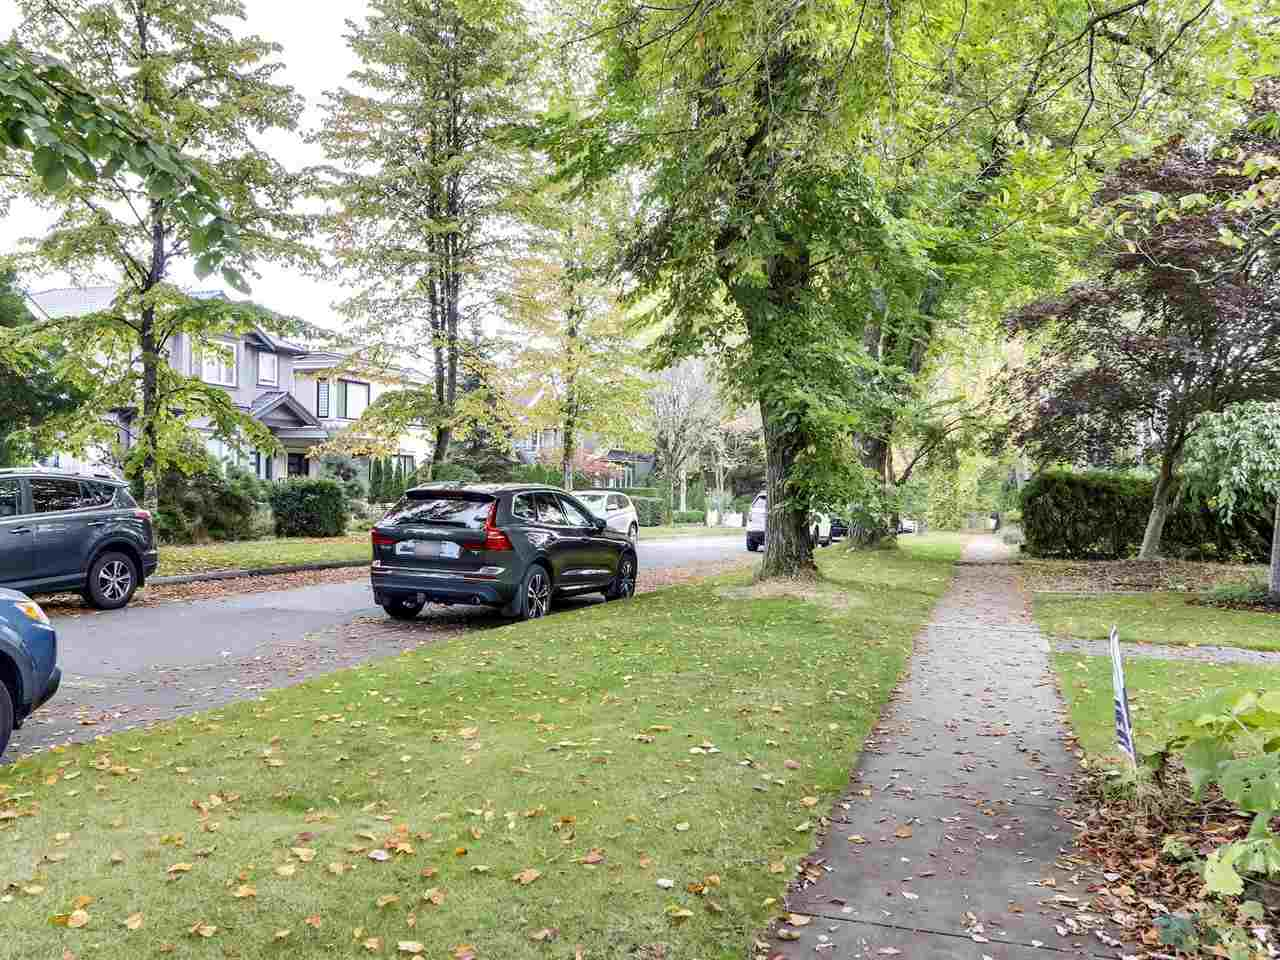 4372 W 13TH AVENUE - Point Grey House/Single Family for sale, 4 Bedrooms (R2508858) - #6